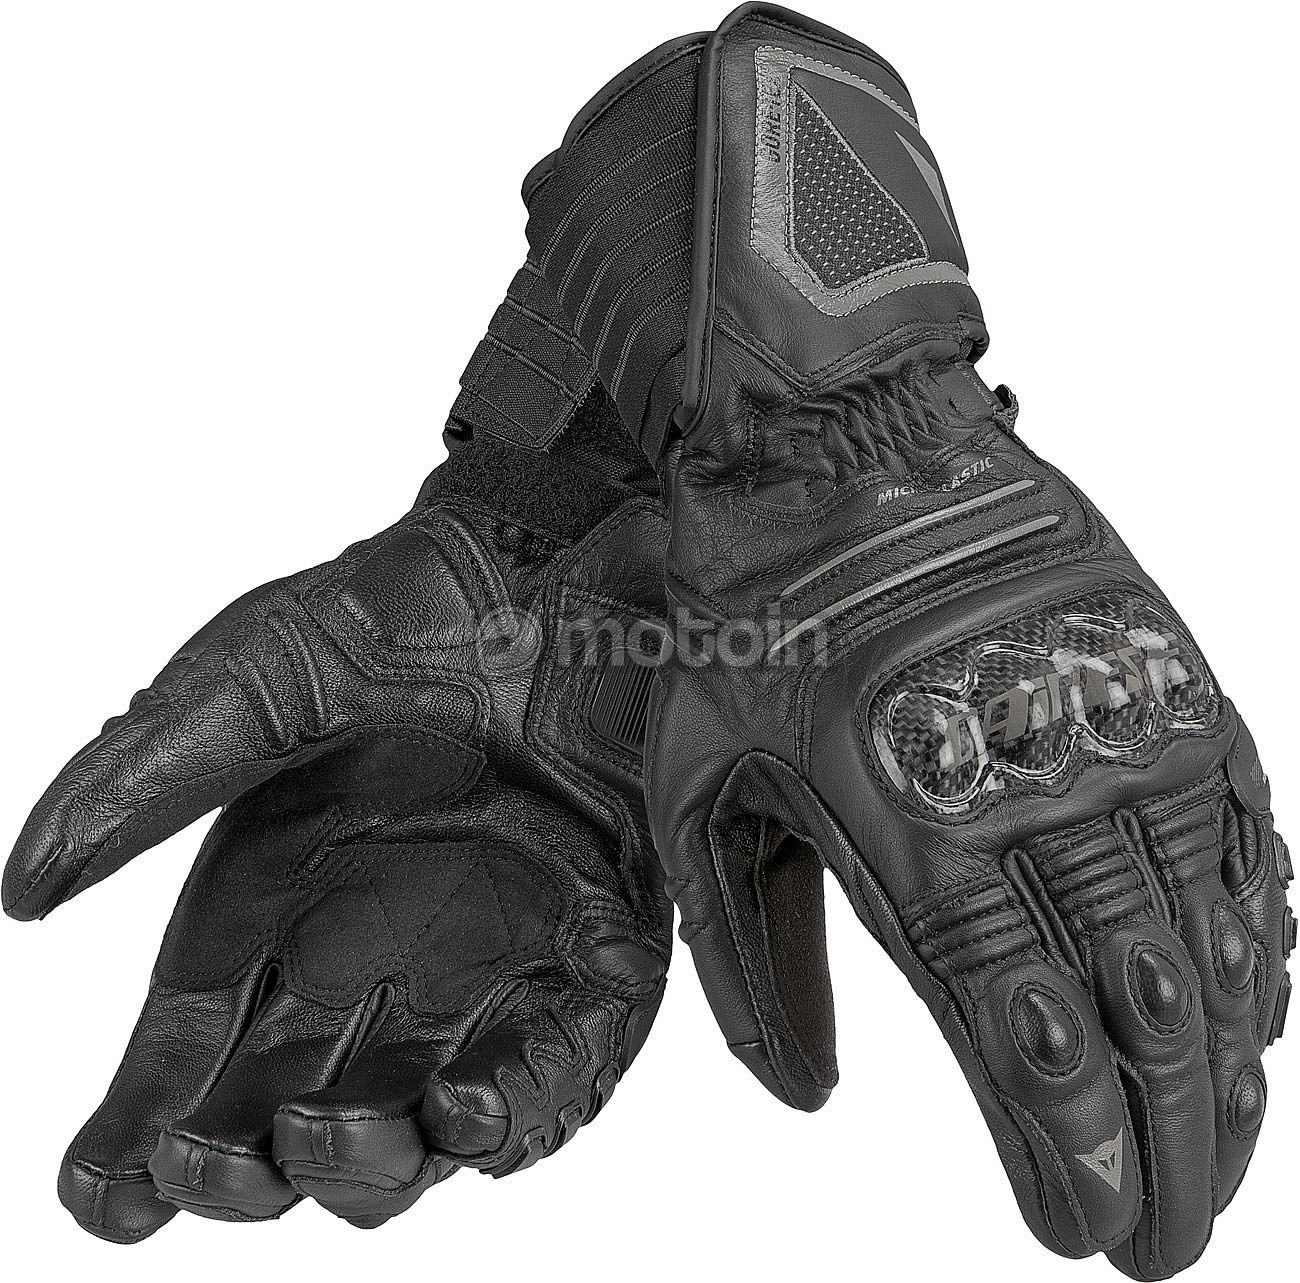 dainese carbon x trafit handschuhe gore tex. Black Bedroom Furniture Sets. Home Design Ideas